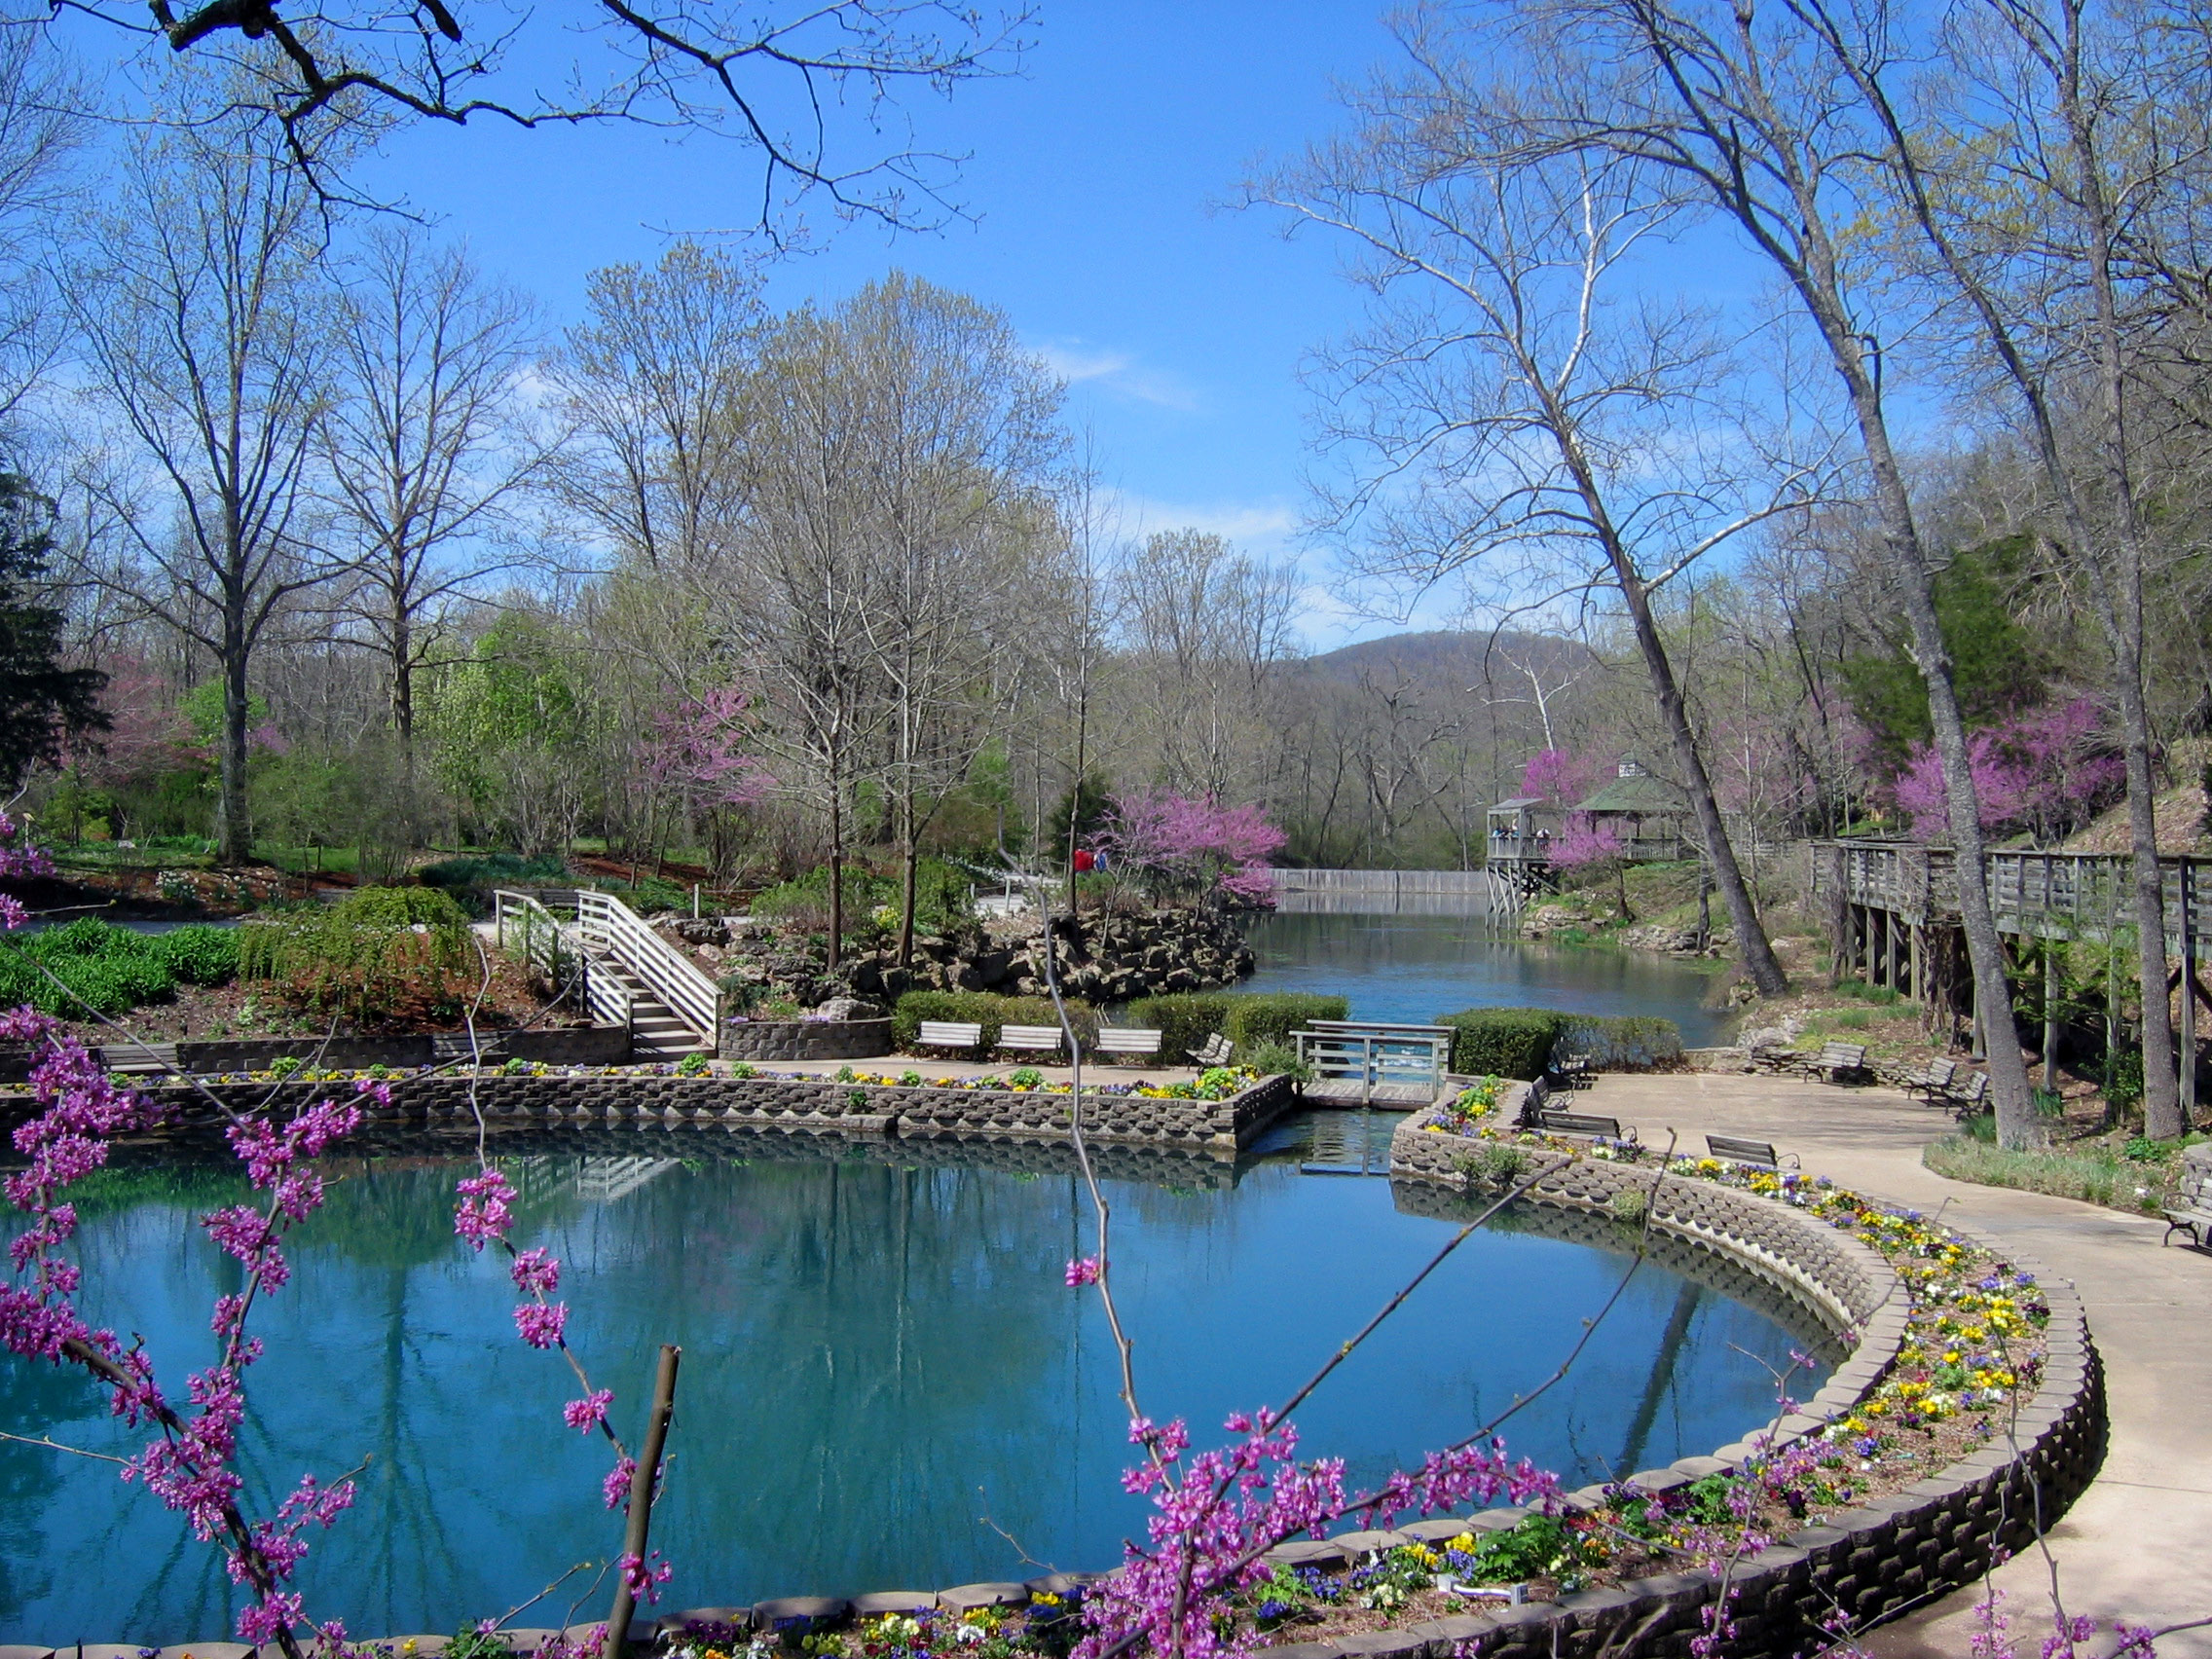 eureka springs guys Reliable landscaping rocks in eureka springs, ar landscaping rock guys brings you reliable and affordable landscaping rocks in eureka springs, ar you now have a chance to completely change the look and feel of your yards without necessarily worrying about planting and maintaining green vegetation or even the artificial turfs.